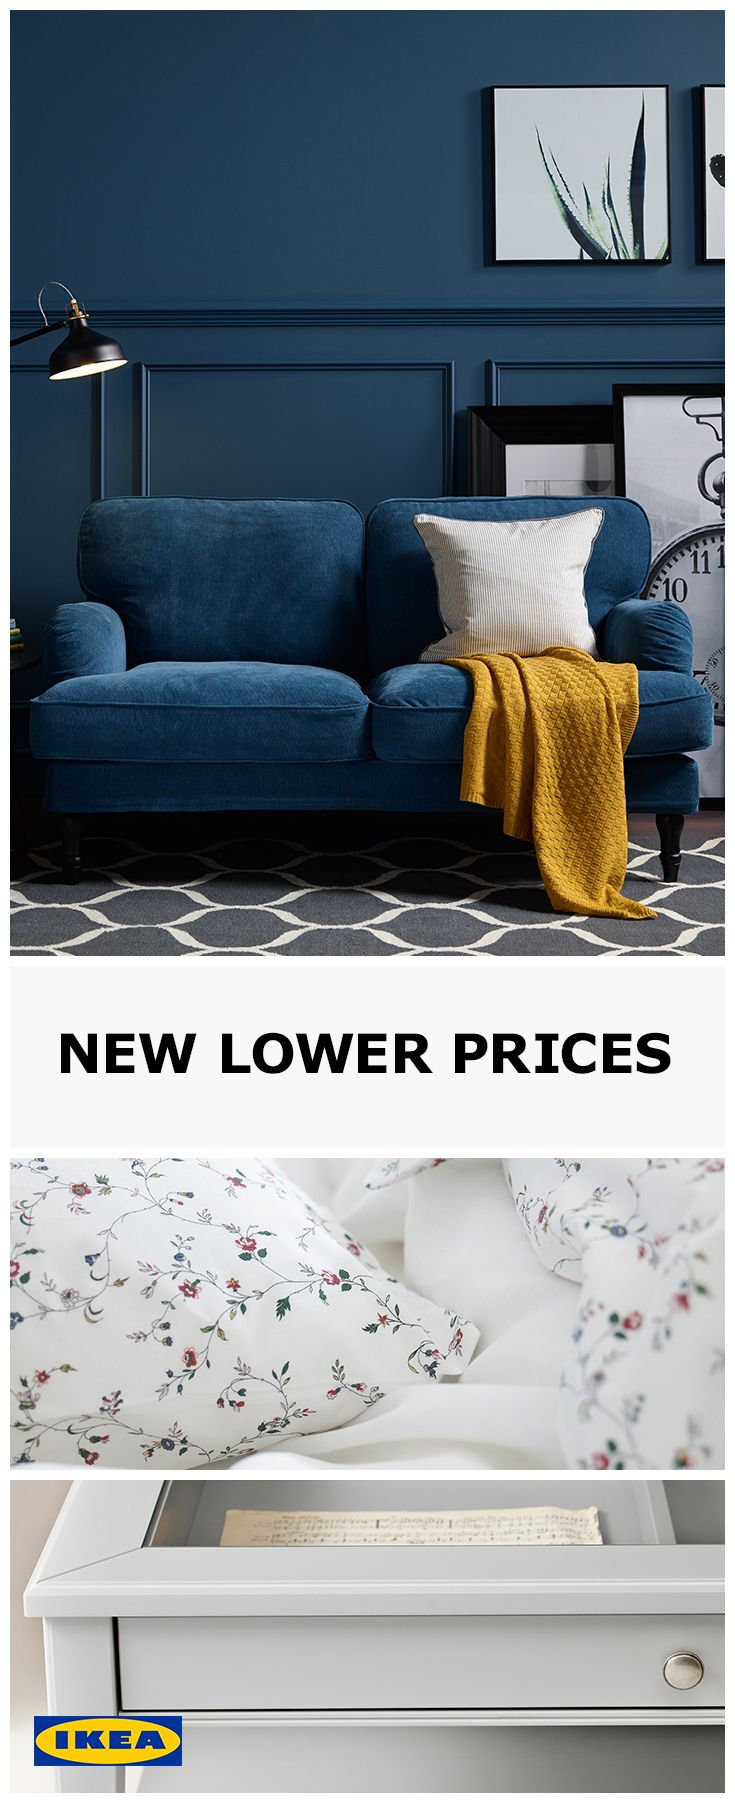 Keep an eye out for our 'New Lower Price' tag, it means we've managed to find a way to bring down the cost without compromising quality. From design and production, to more efficient packaging, we're making it more affordable than ever to furnish your entire home.